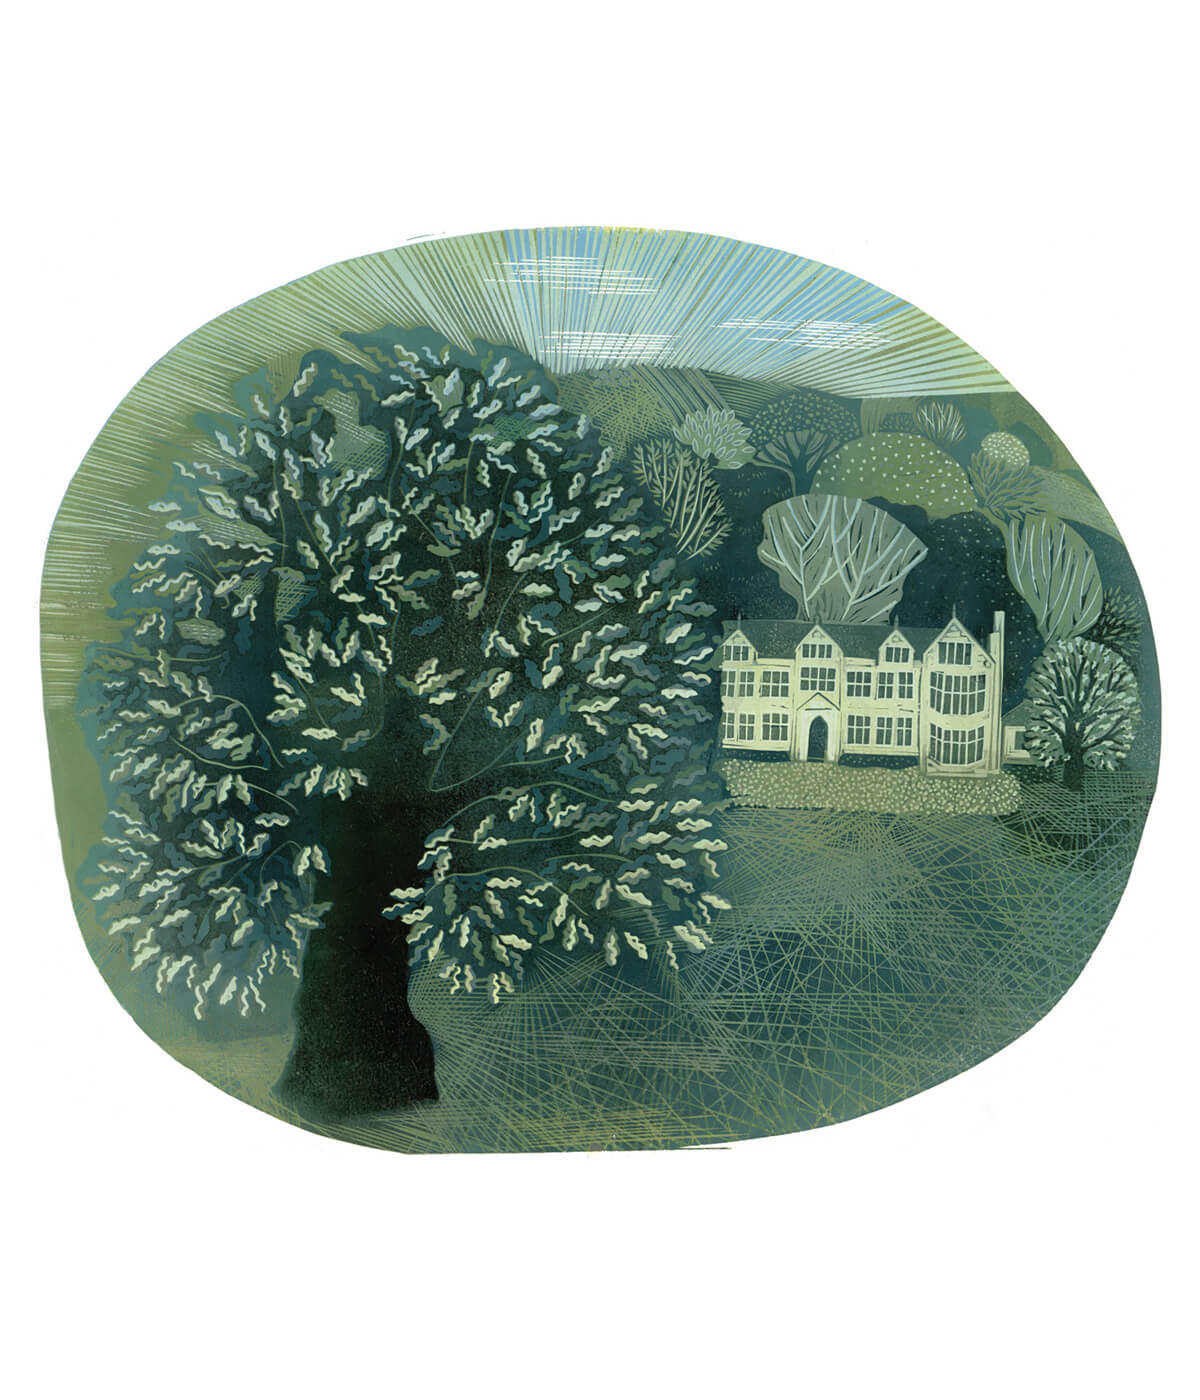 Mayshine at Launde, a linocut print by Sarah Kirby